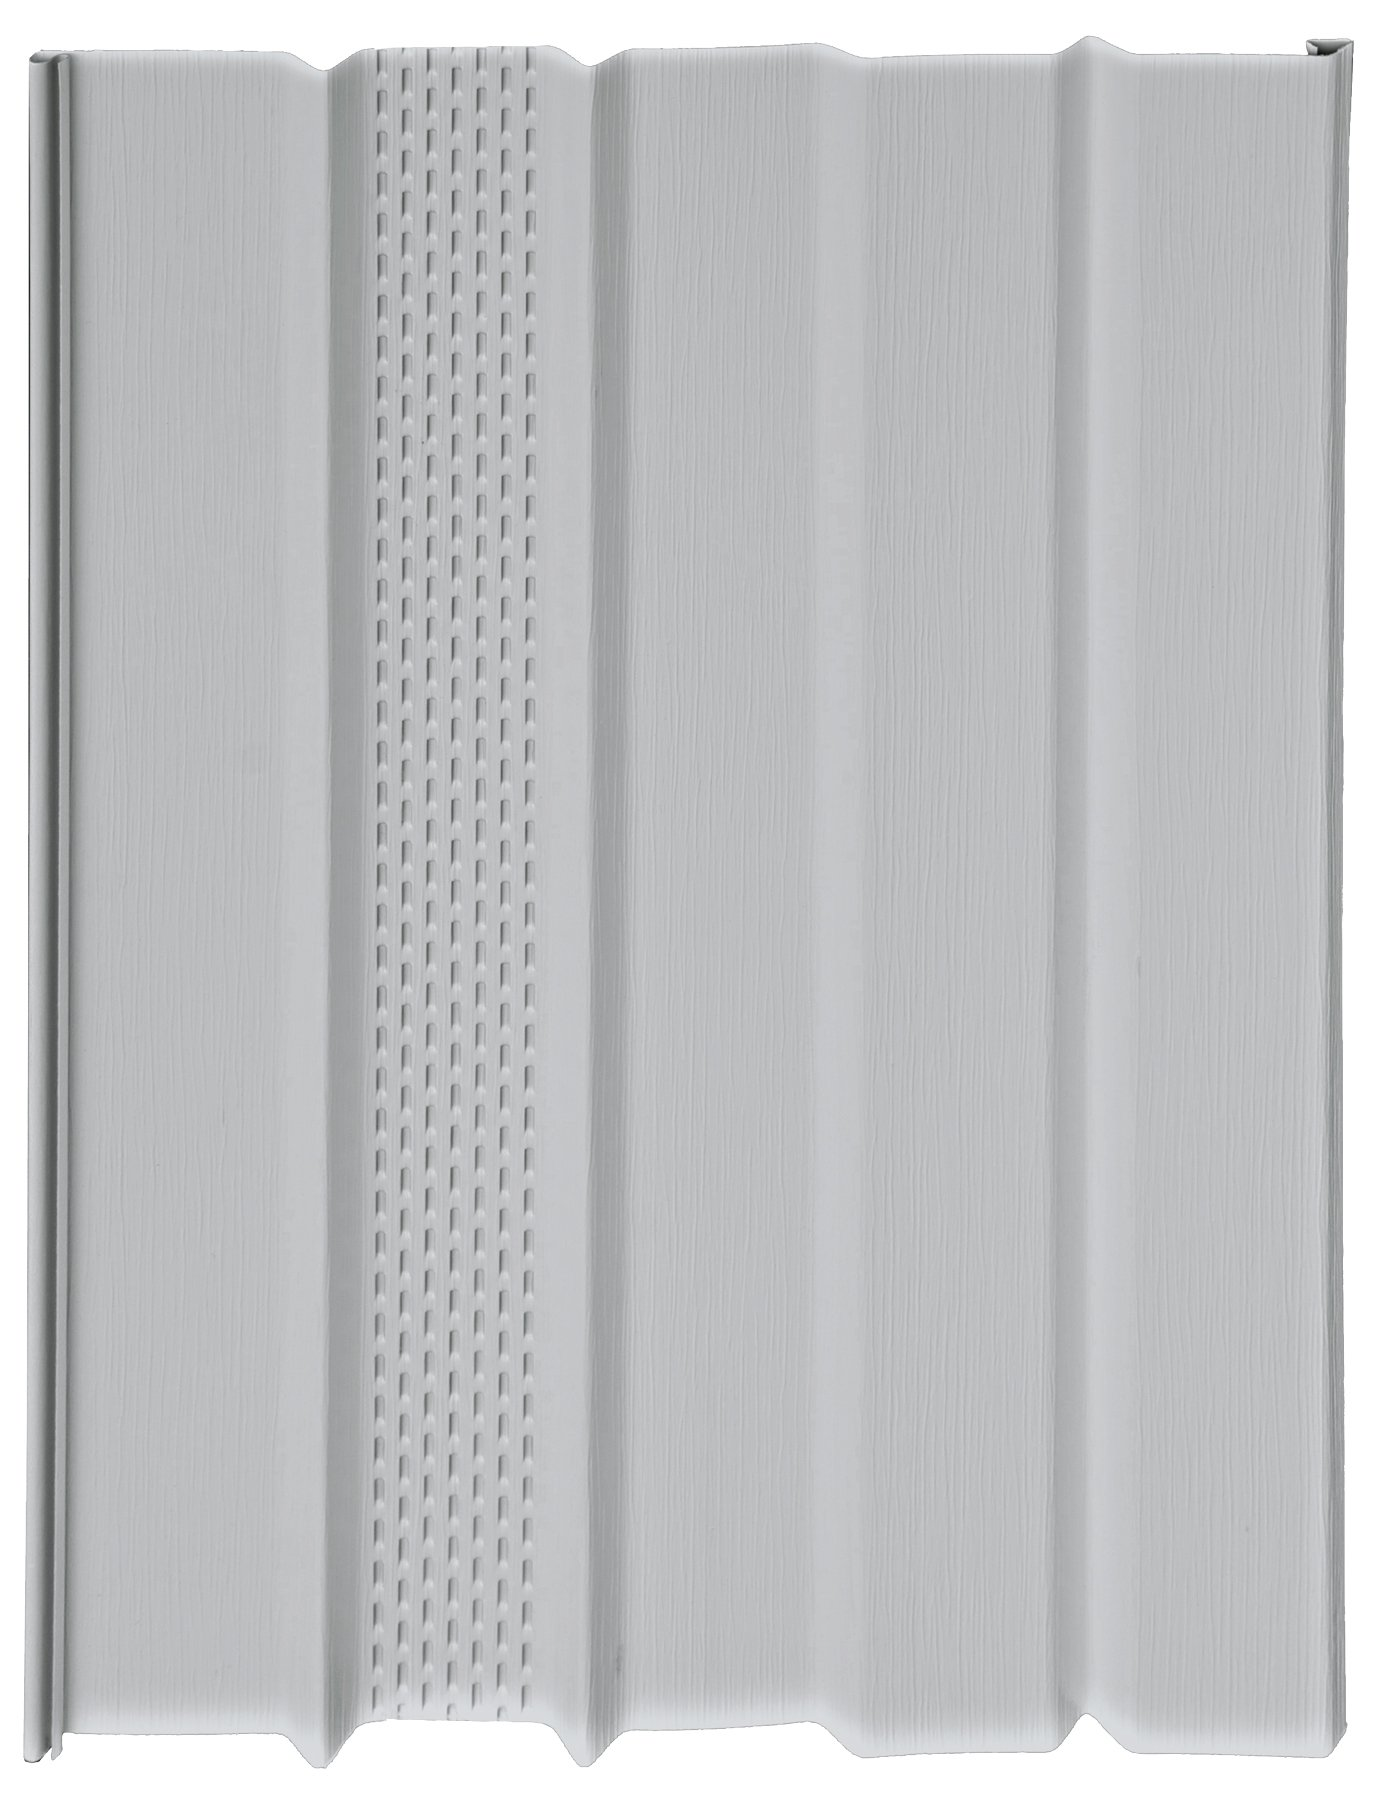 Mobile Home Skirting Vinyl Underpinning VENTED Panel GREY 16'' W x 46'' L (Box of 8) by Mobile Home Parts